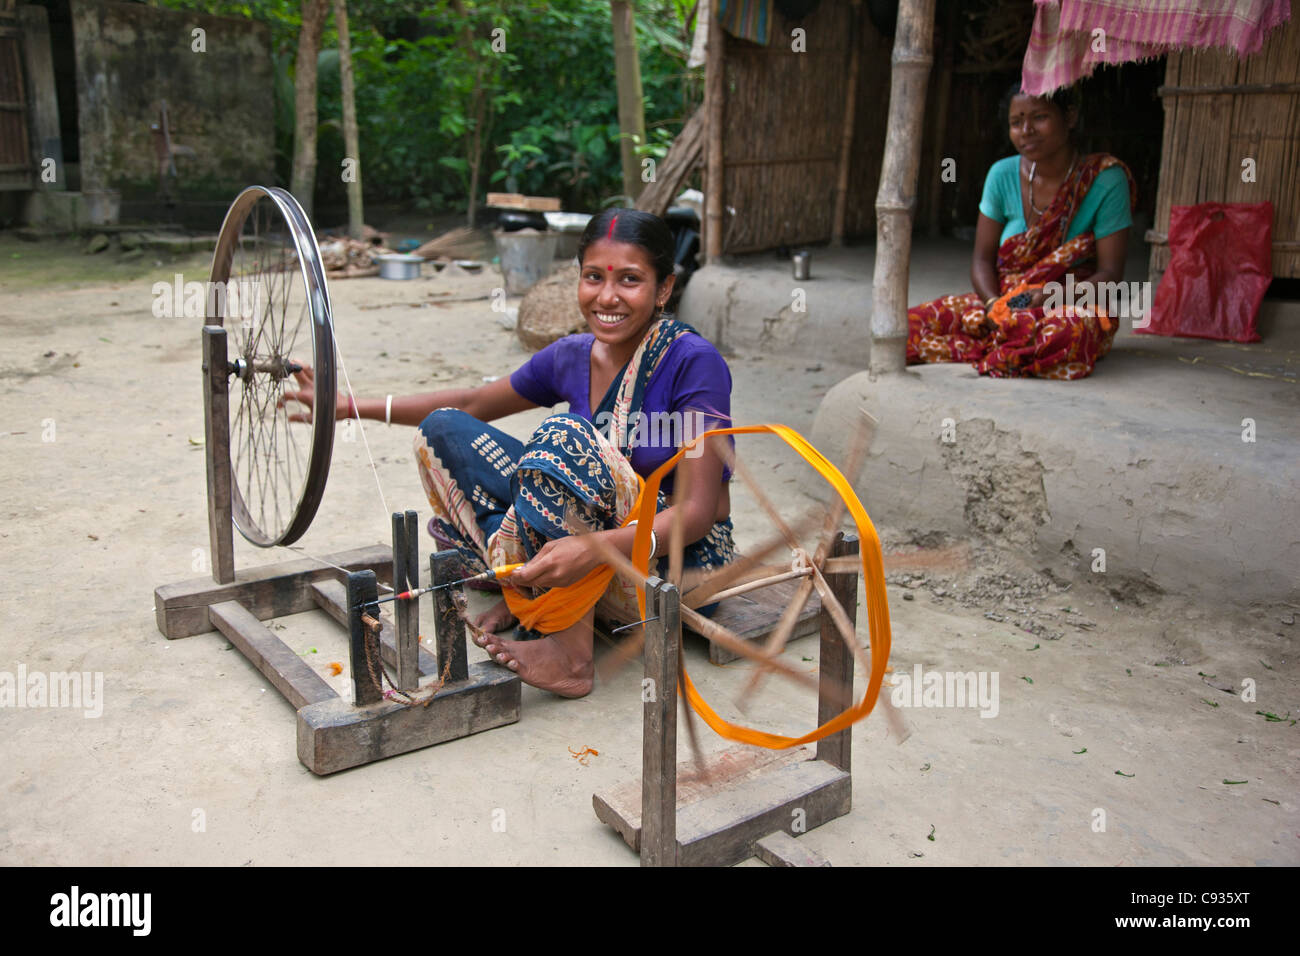 A woman spins silk onto bobbins at Santipur village on the banks of the Hooghly River. - Stock Image